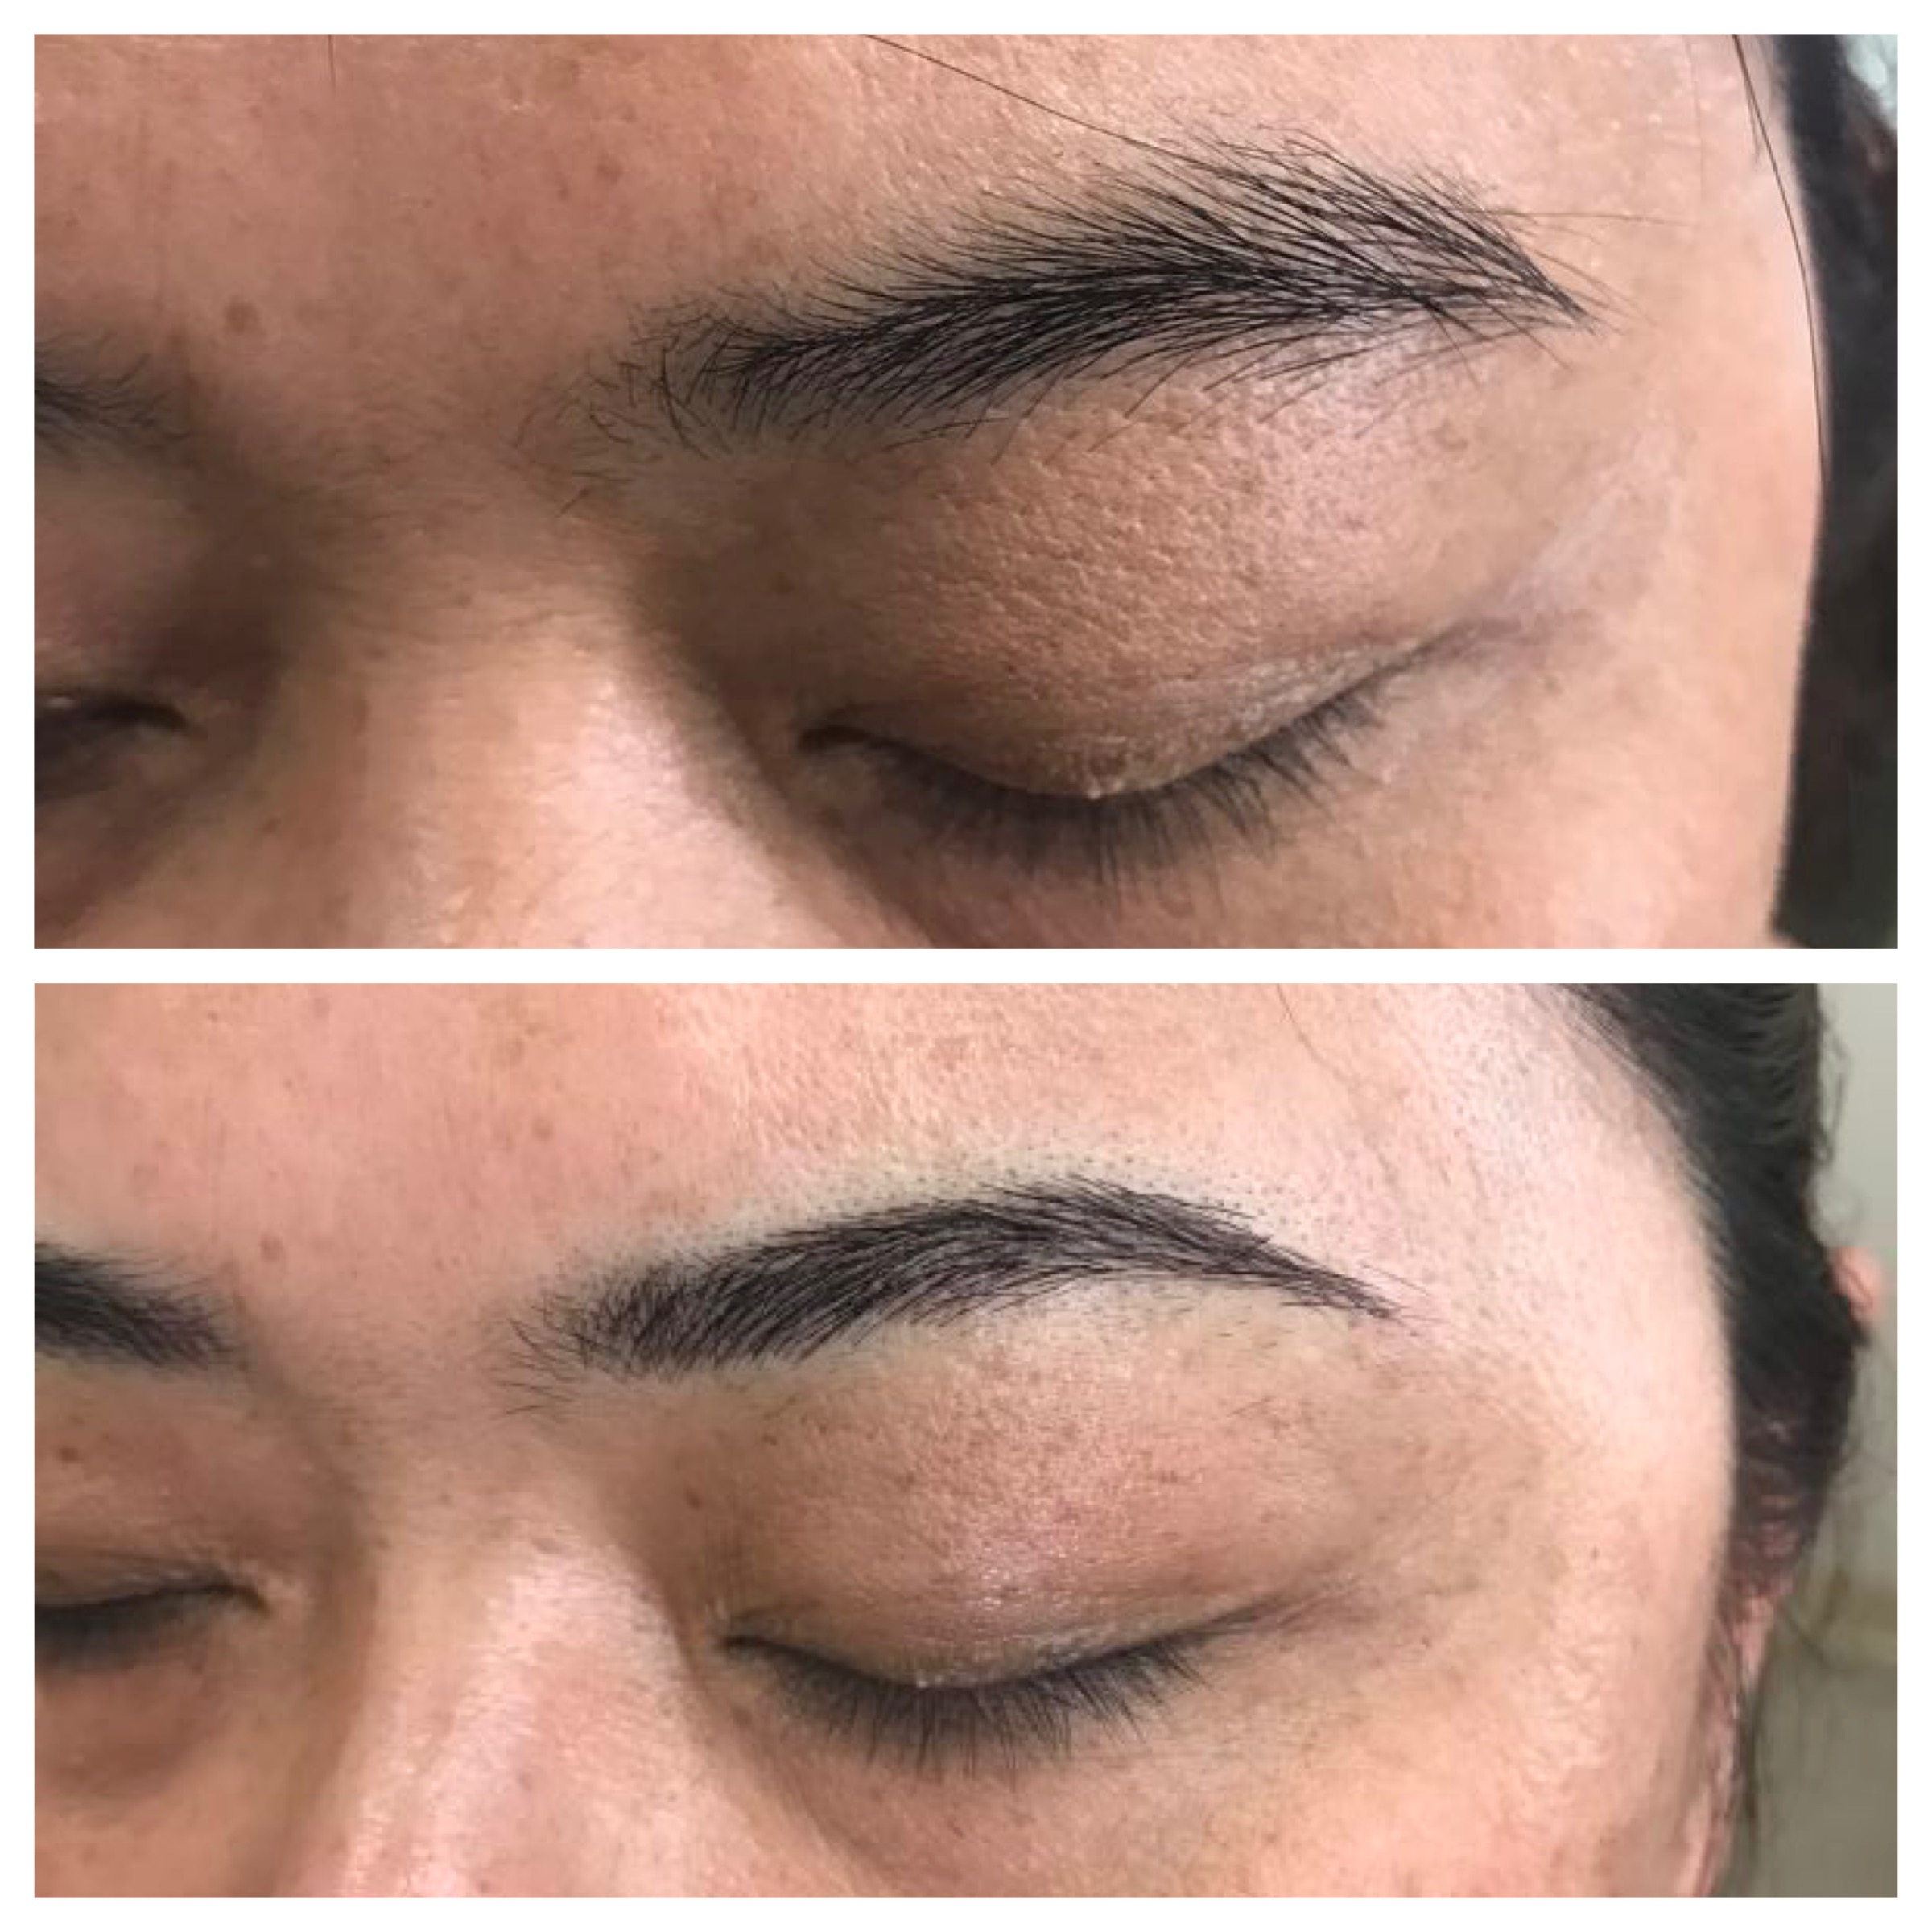 Shapping the brow